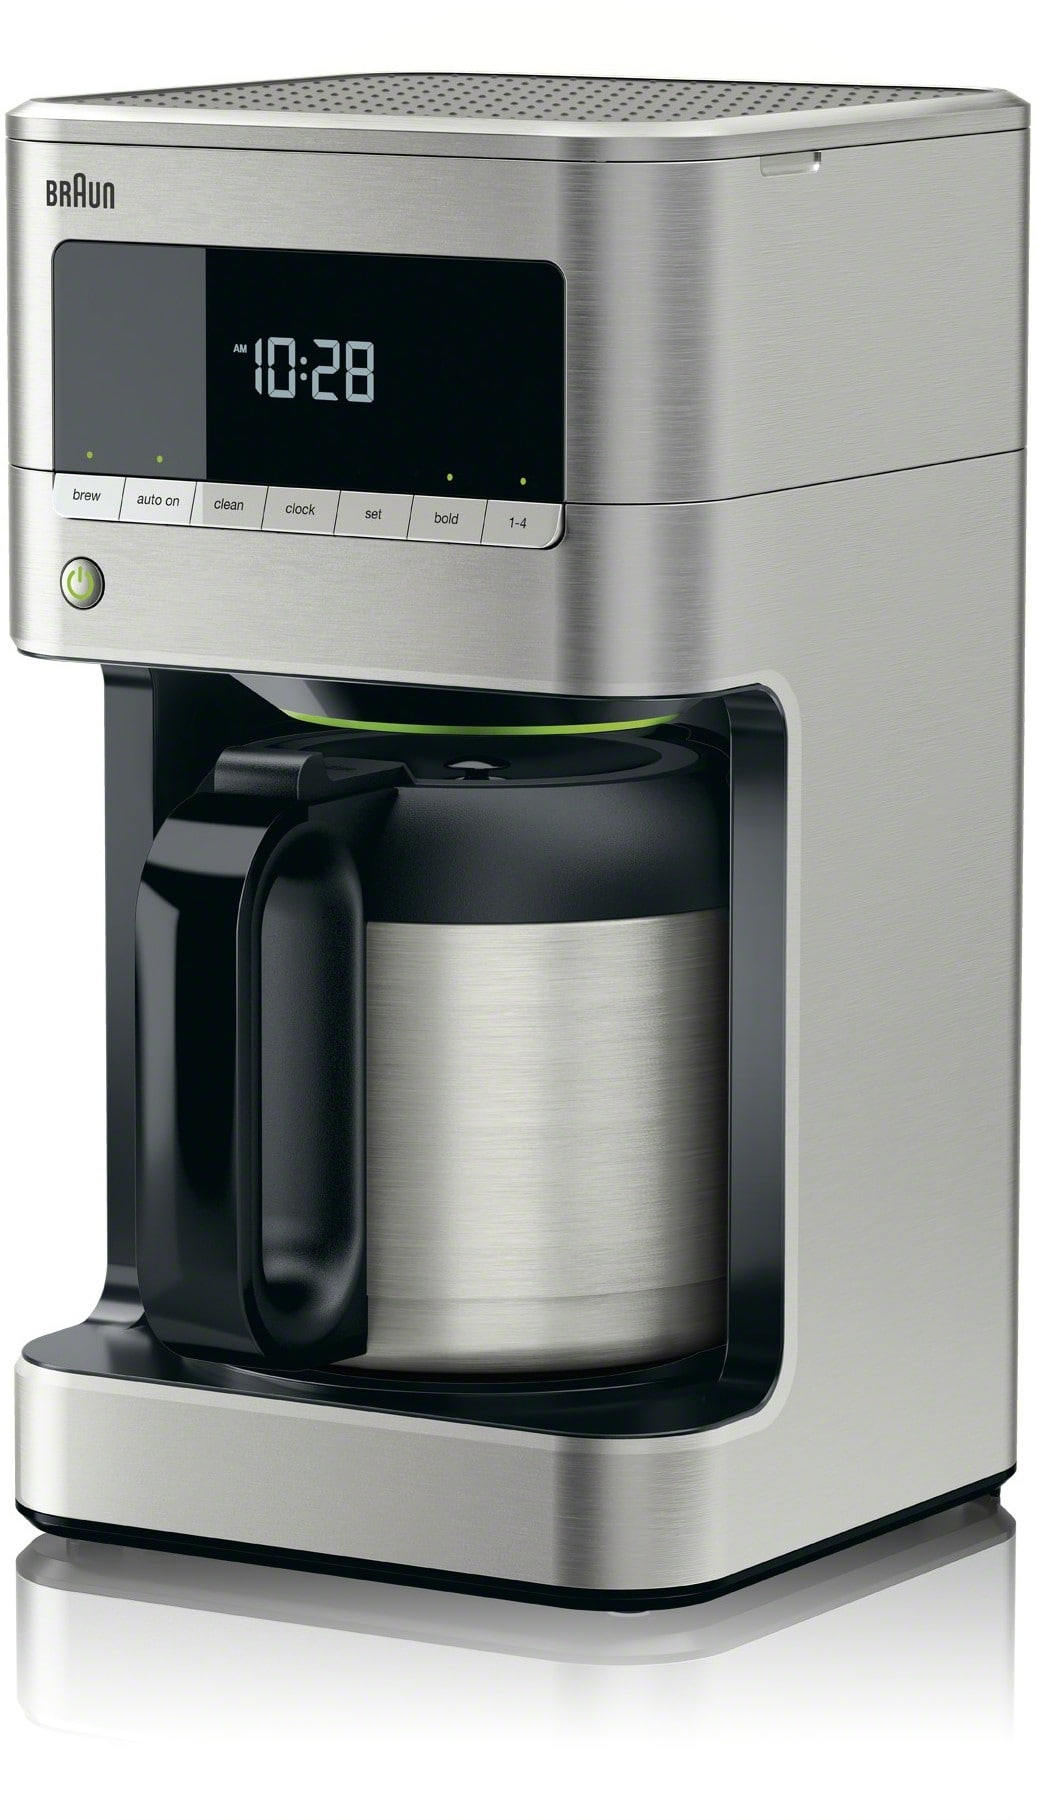 Braun Kf7175si Brewsense Drip Coffee Maker With Pureflavor